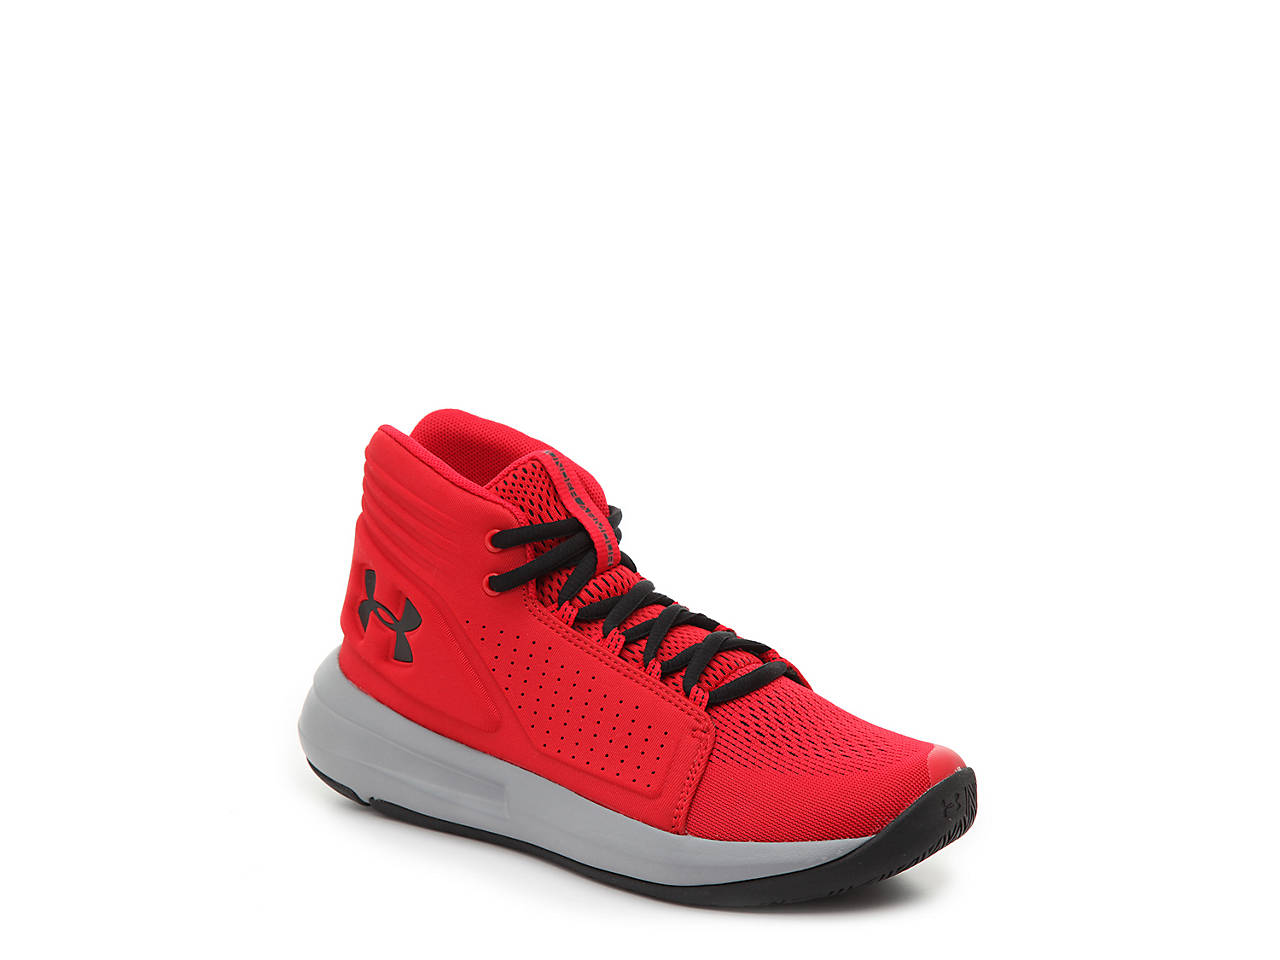 Under Armour Torch Youth Basketball Shoe Kids Shoes Dsw